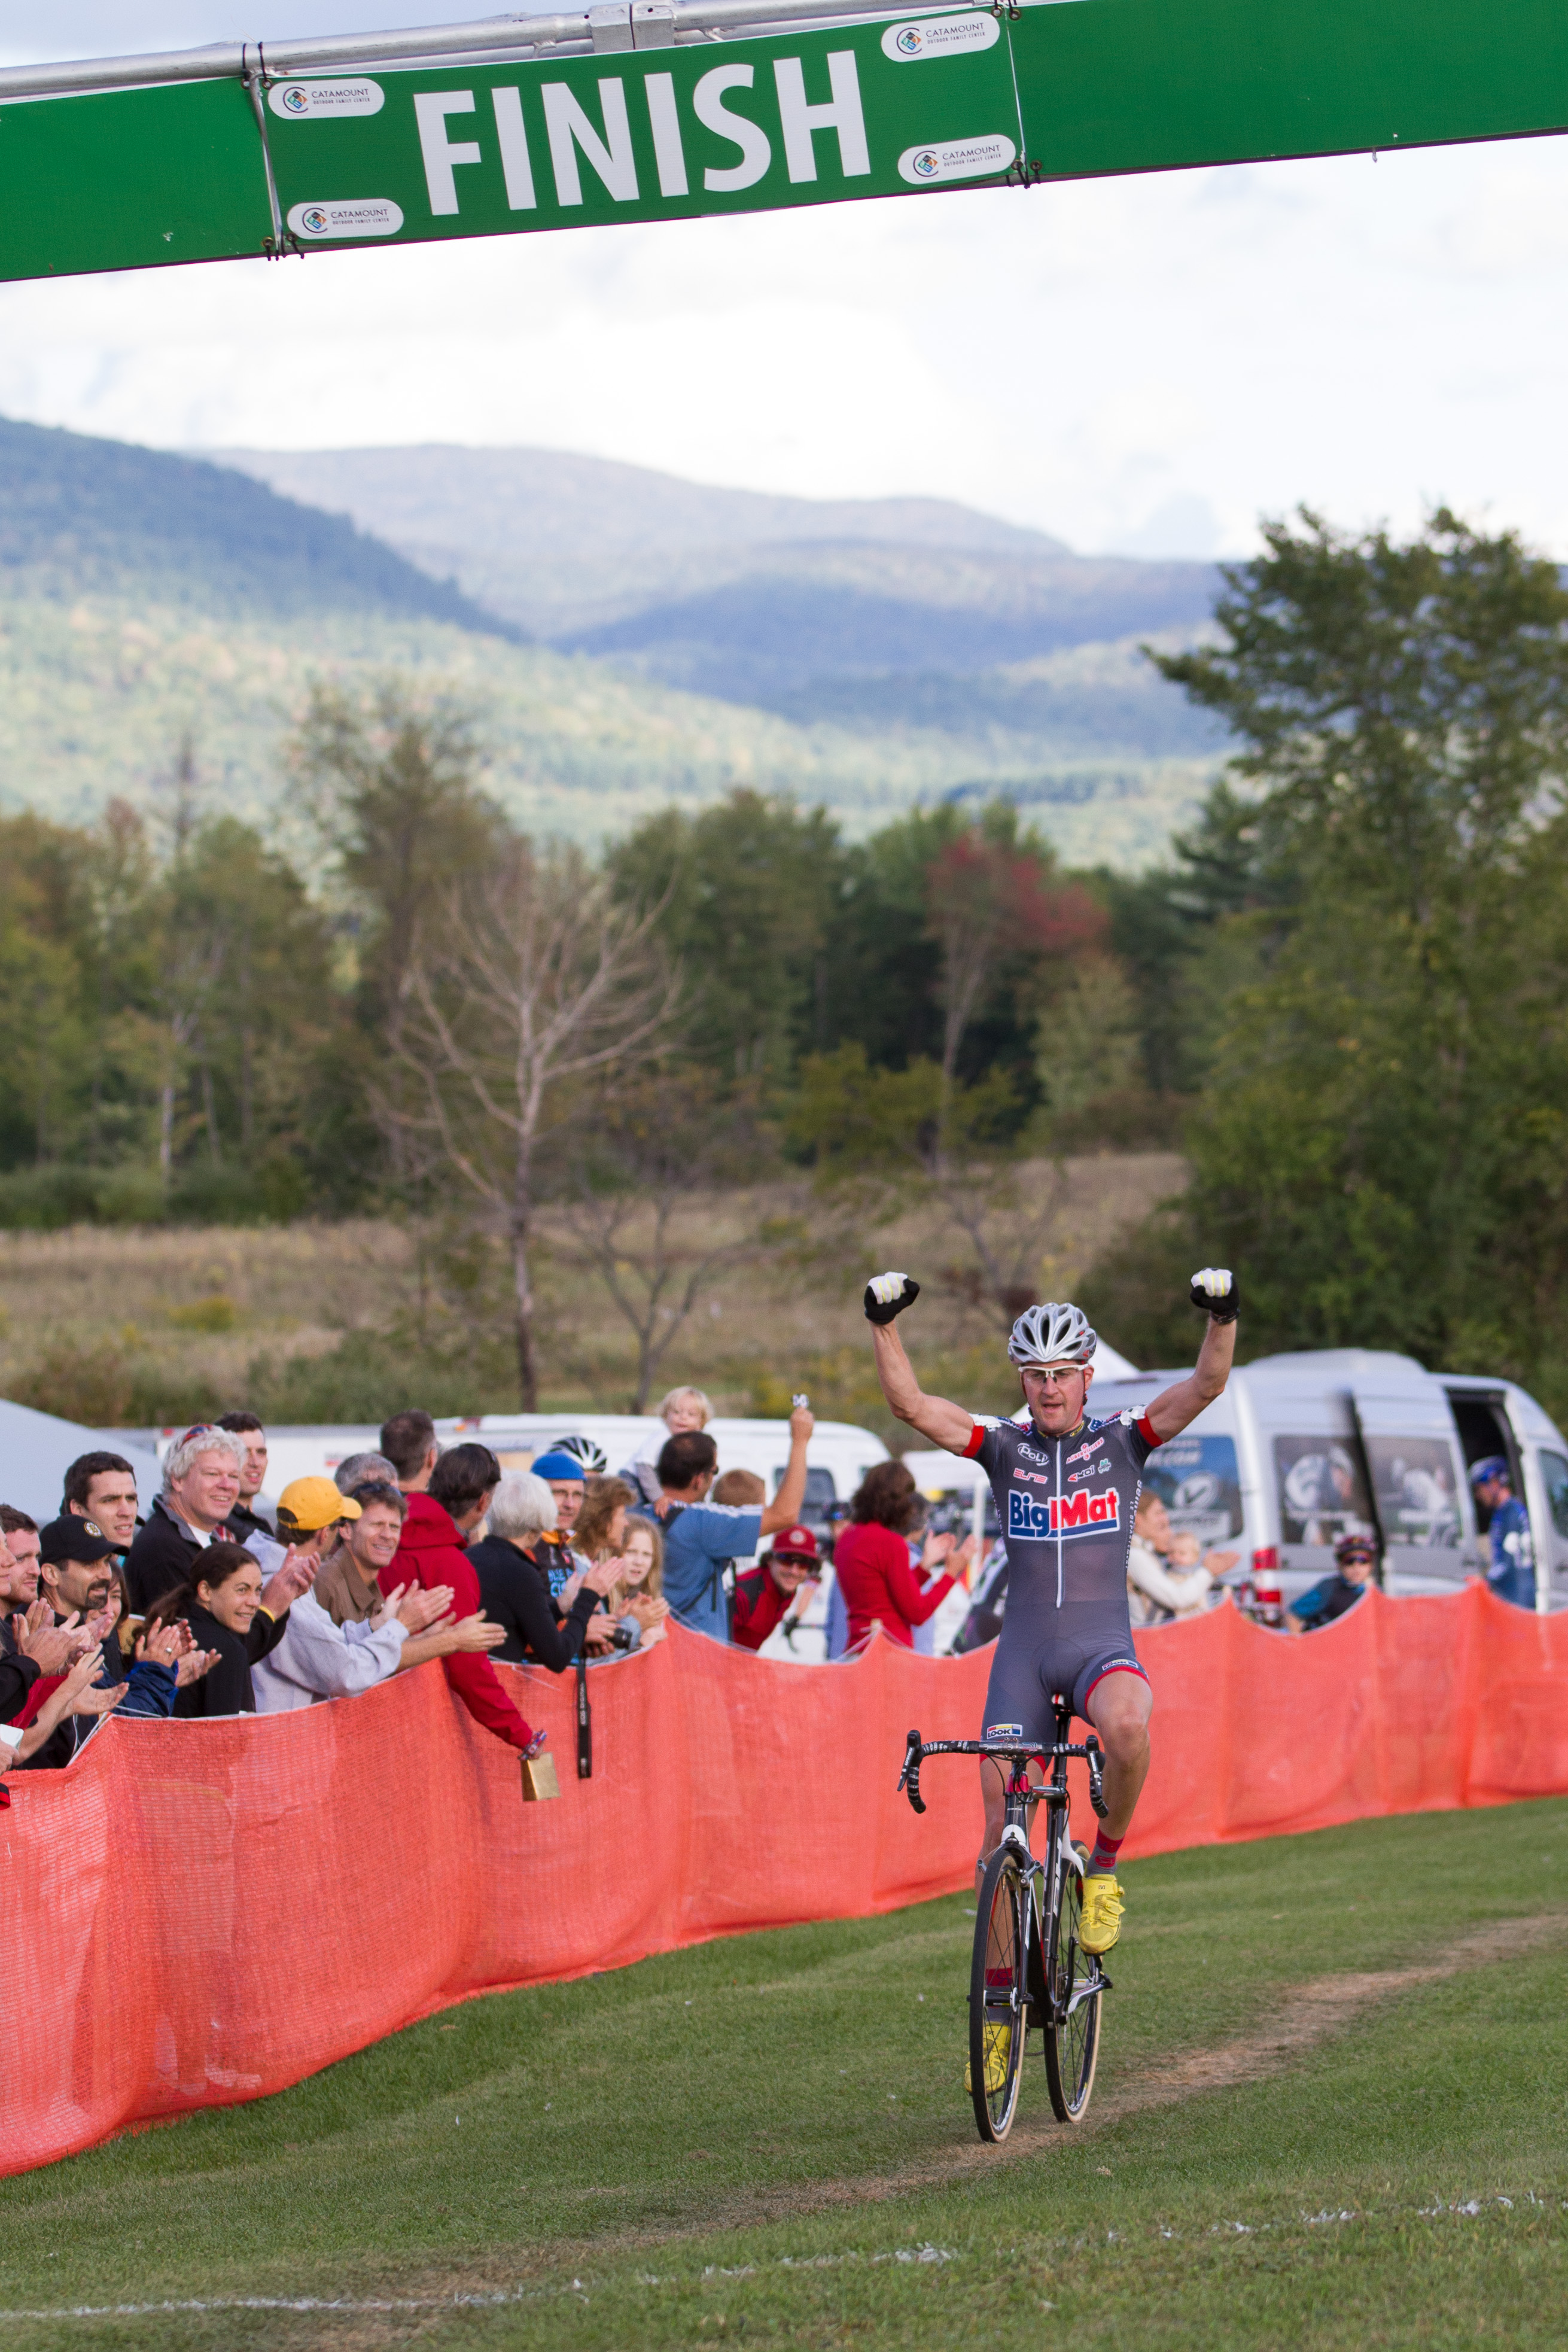 Nicolas Bazin wins the first race of the 2012 Verge New England Cyclocross Series. Photo: Todd Prekaski.